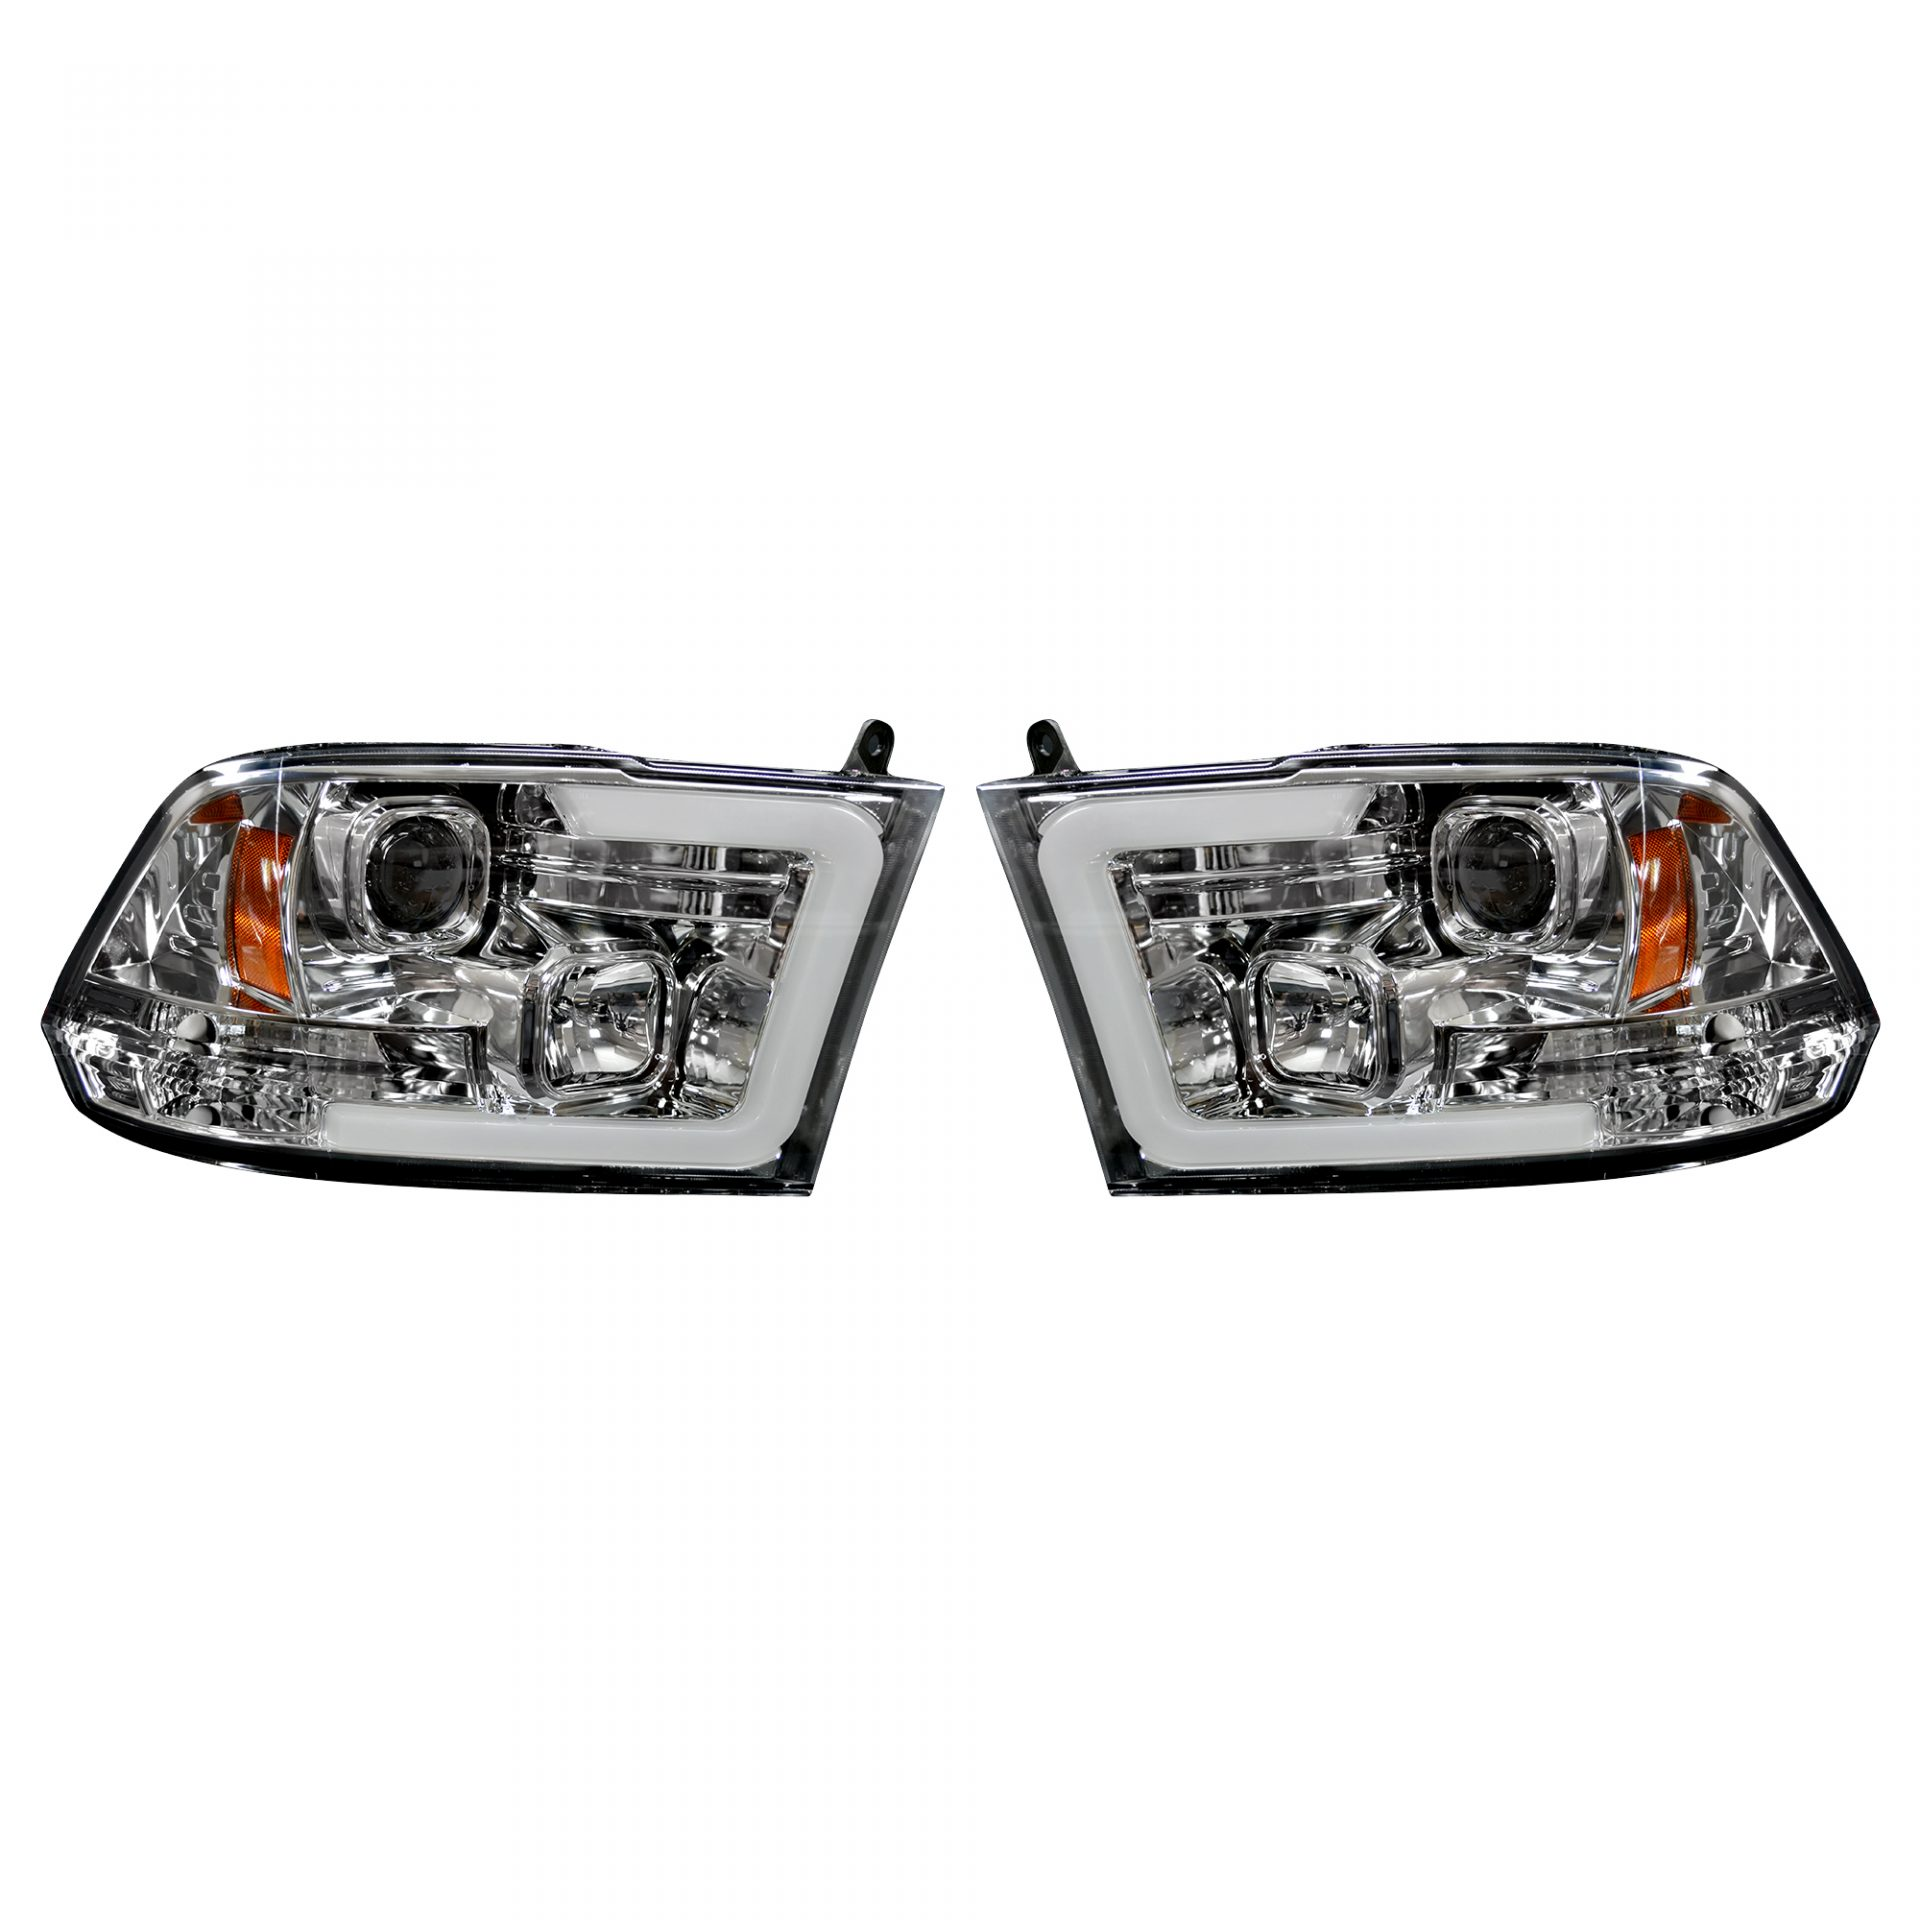 hight resolution of recon 264270clc dodge ram 09 19 1500 10 19 2500 3500 projector headlights w ultra high power smooth oled halos drl clear chrome